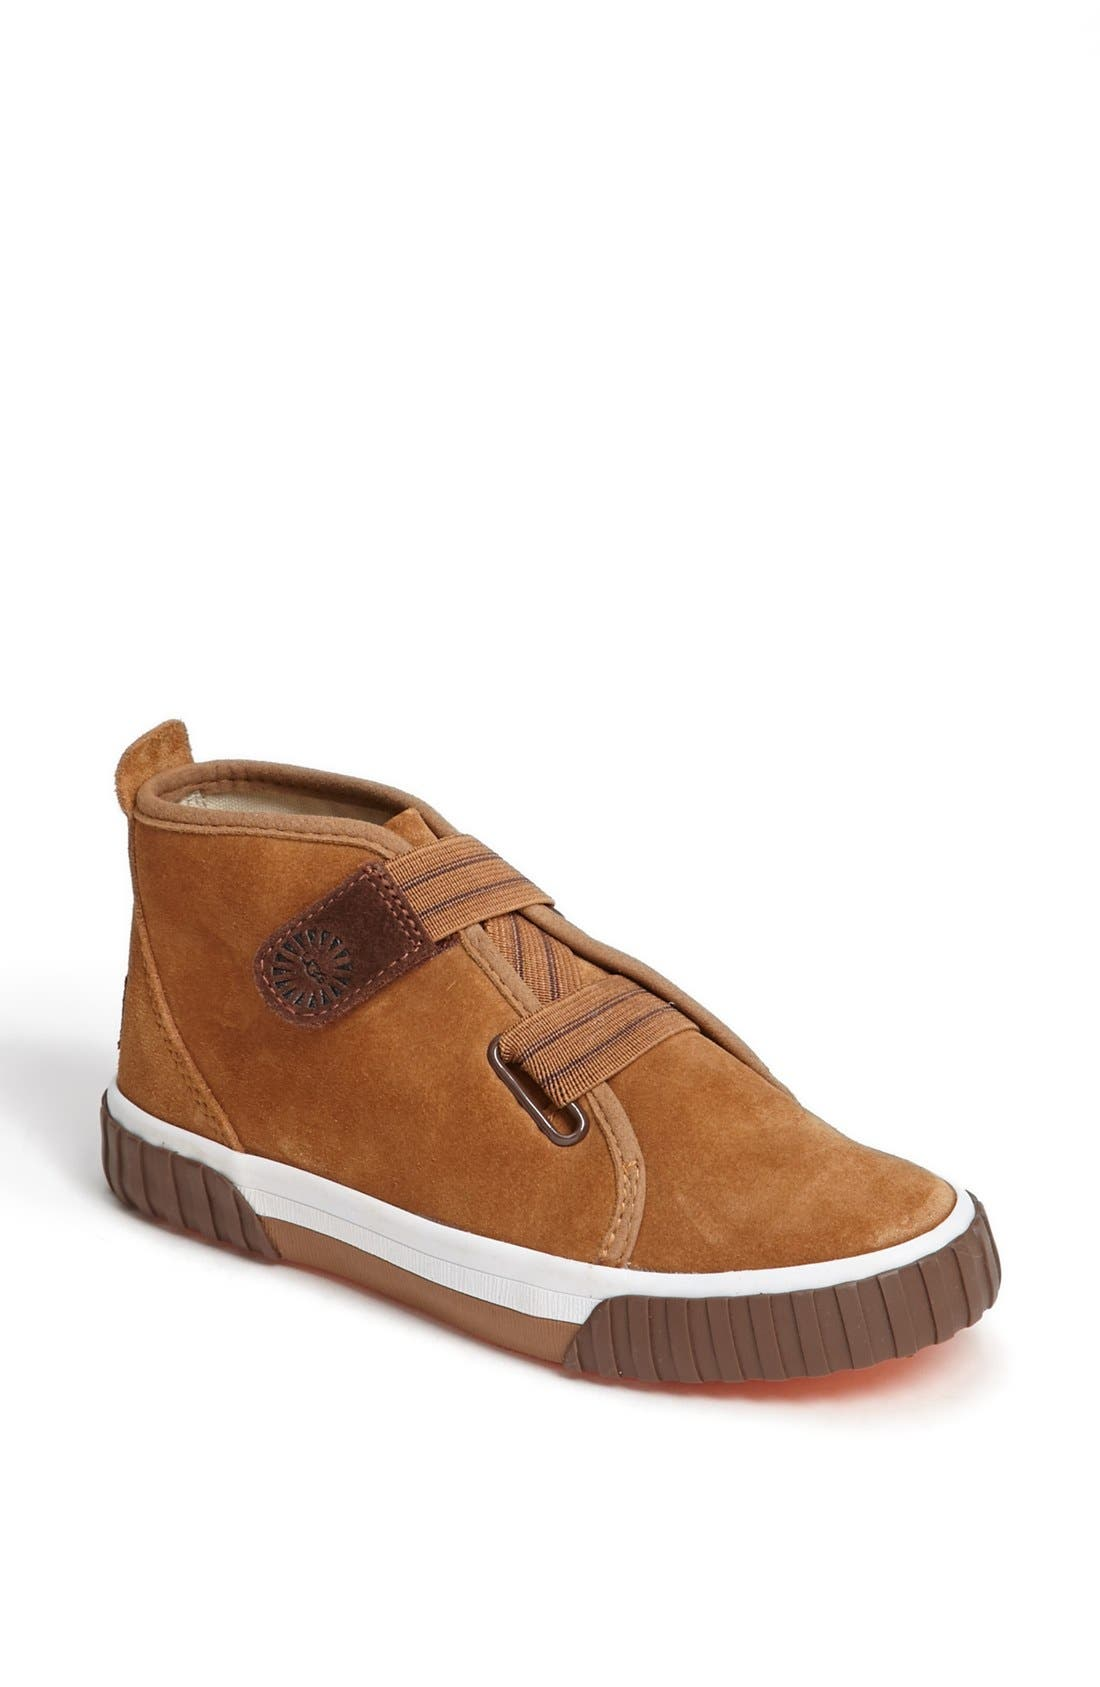 Alternate Image 1 Selected - UGG® Australia 'Mycah' Sneaker (Toddler, Little Kid & Big Kid)